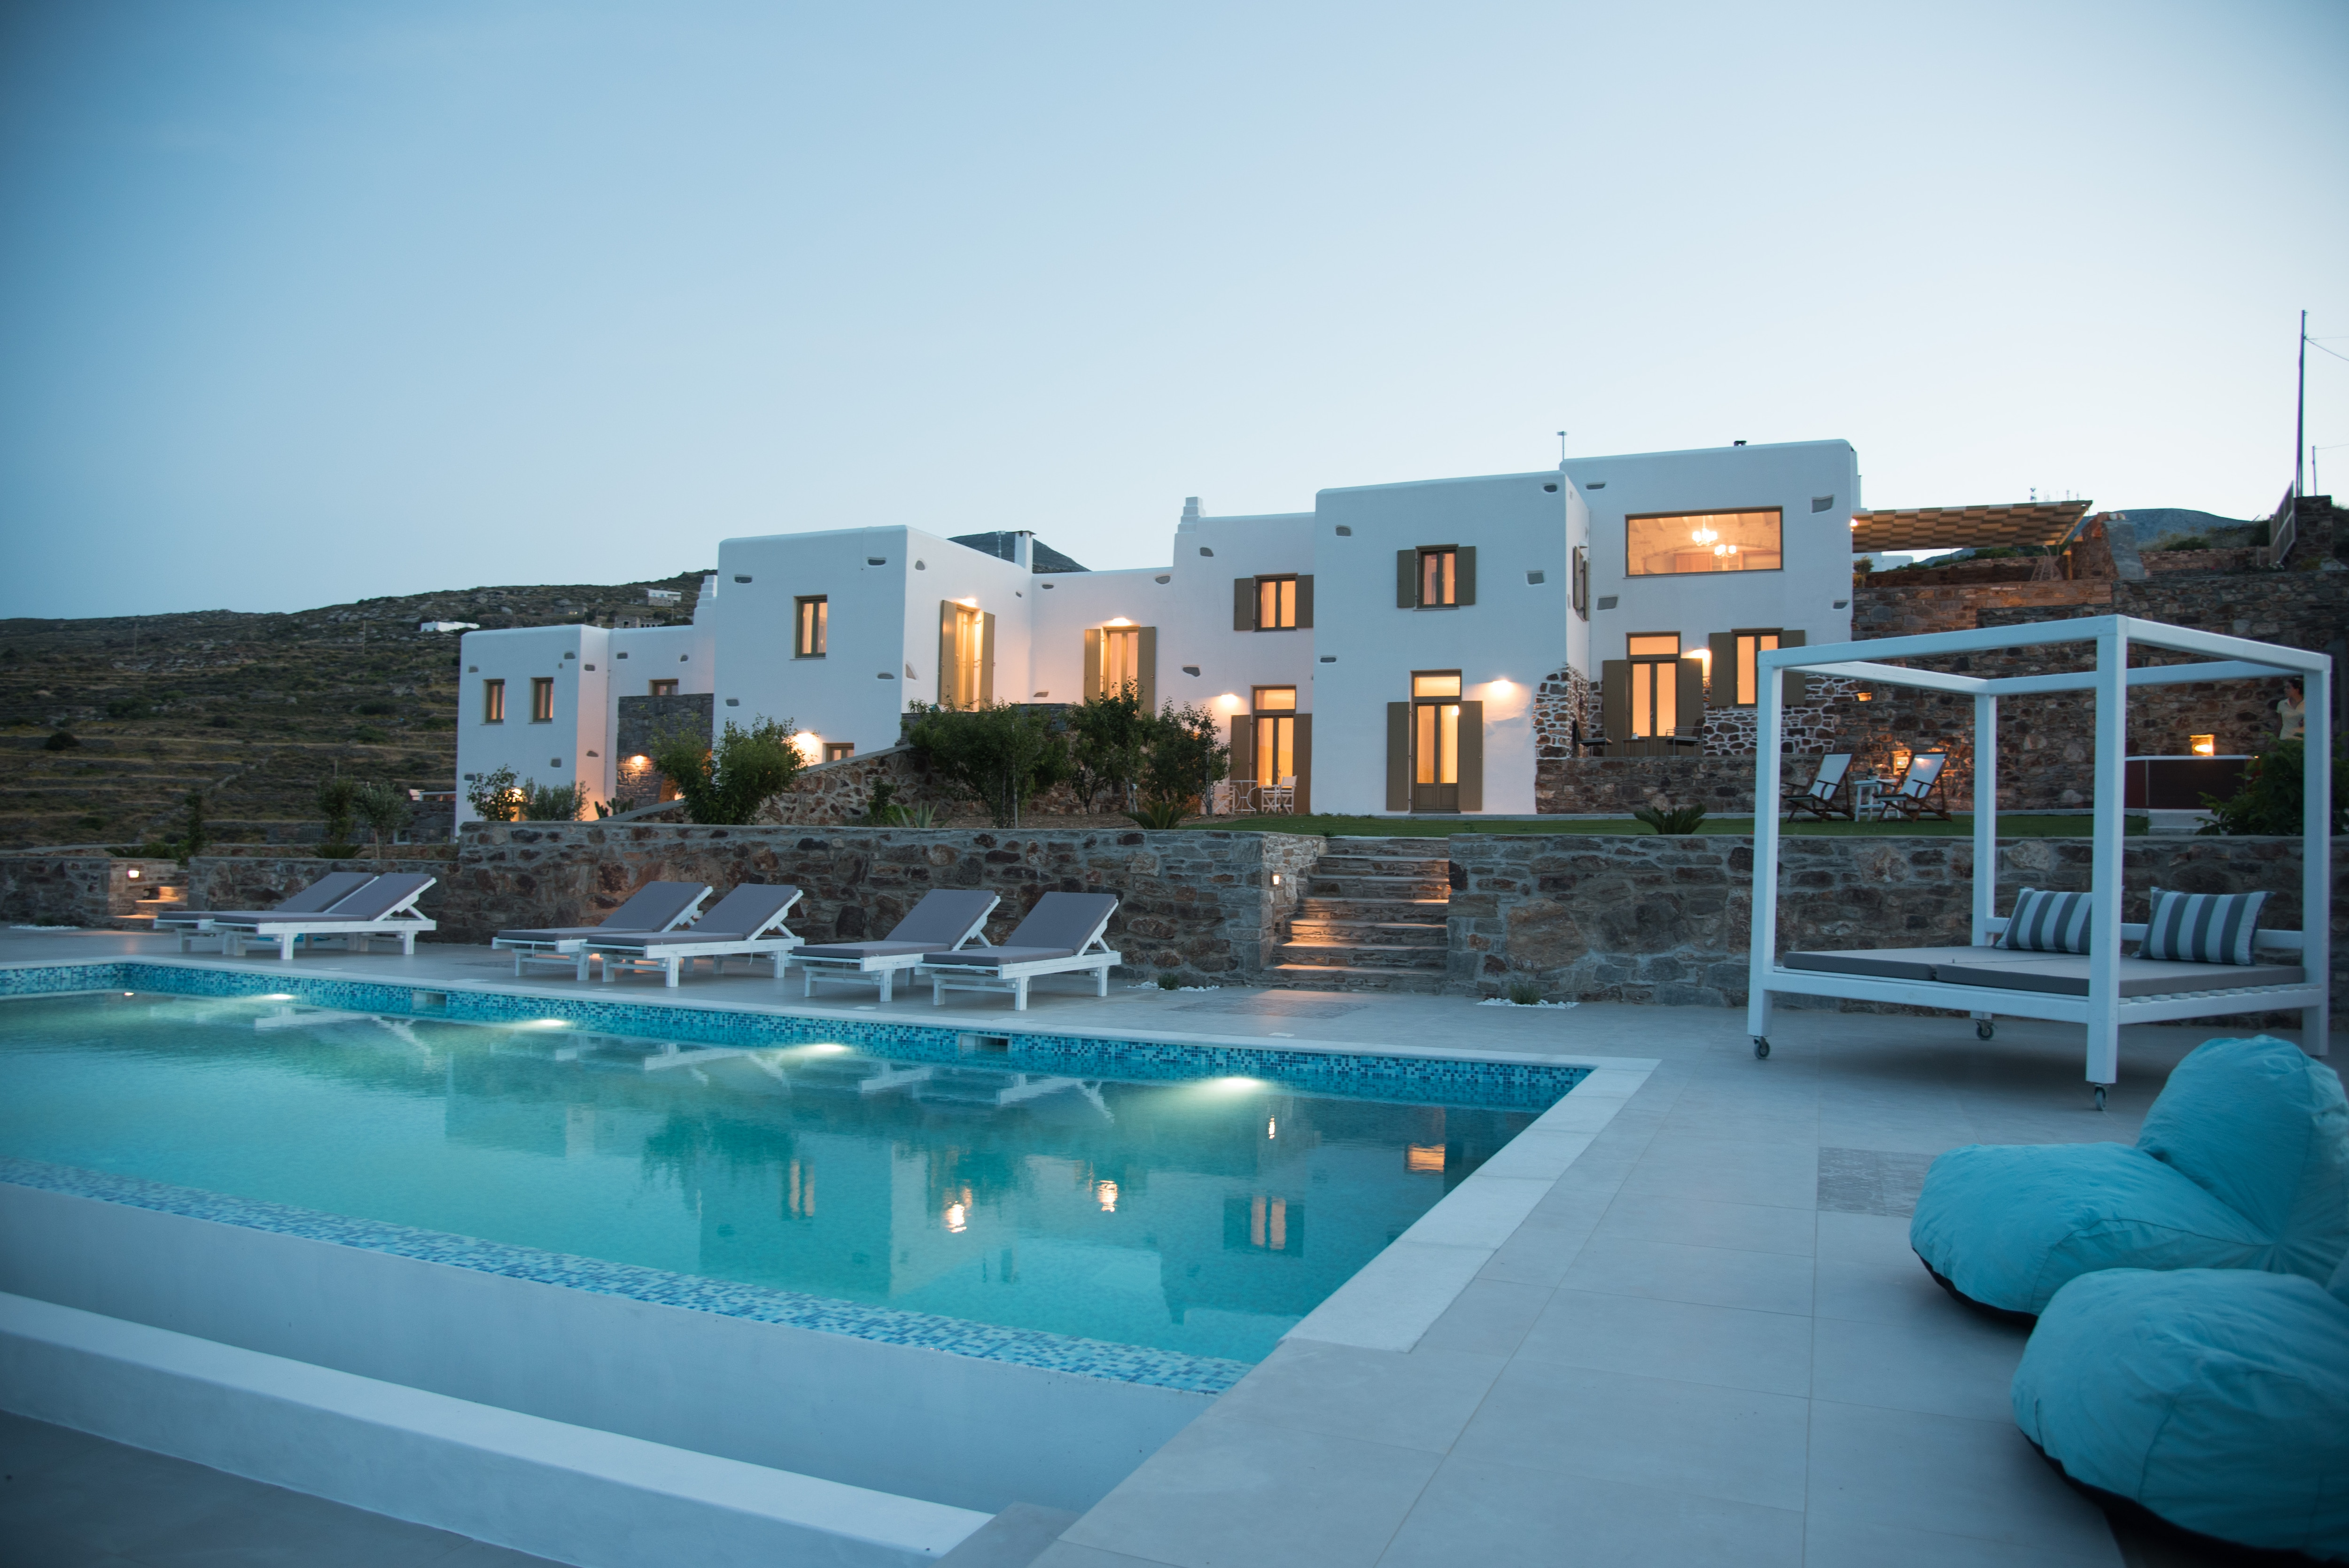 Property Image 1 - Hilltop complex of three villas with private pool and jacuzzi